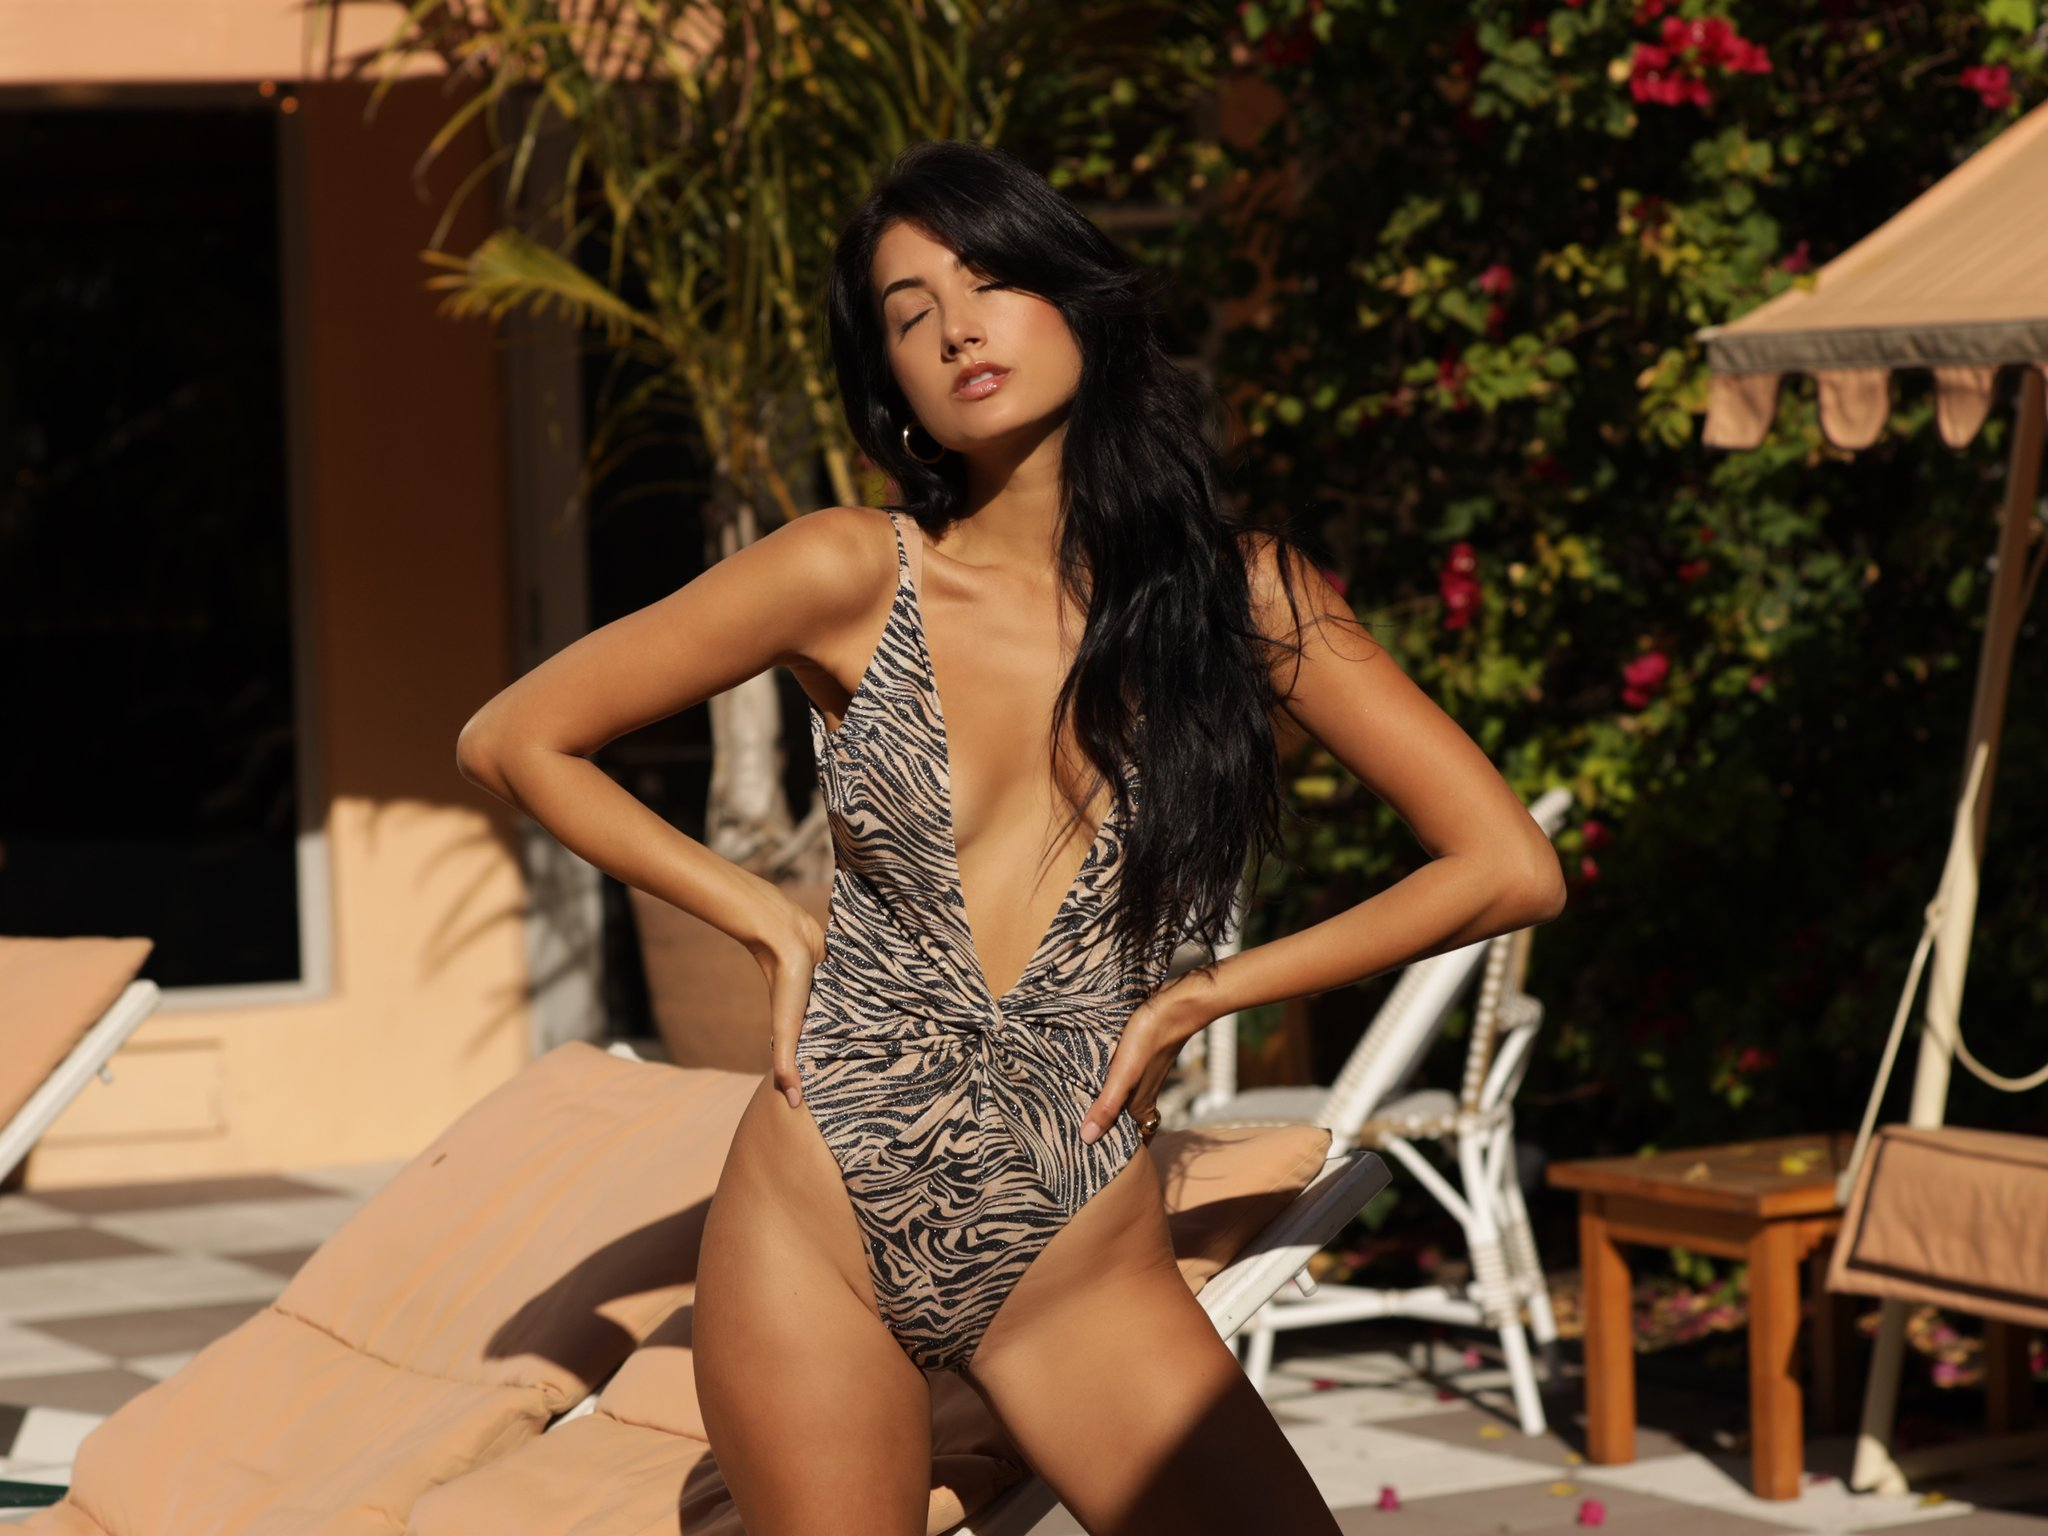 Woman standing in animal print one piece swimsuit